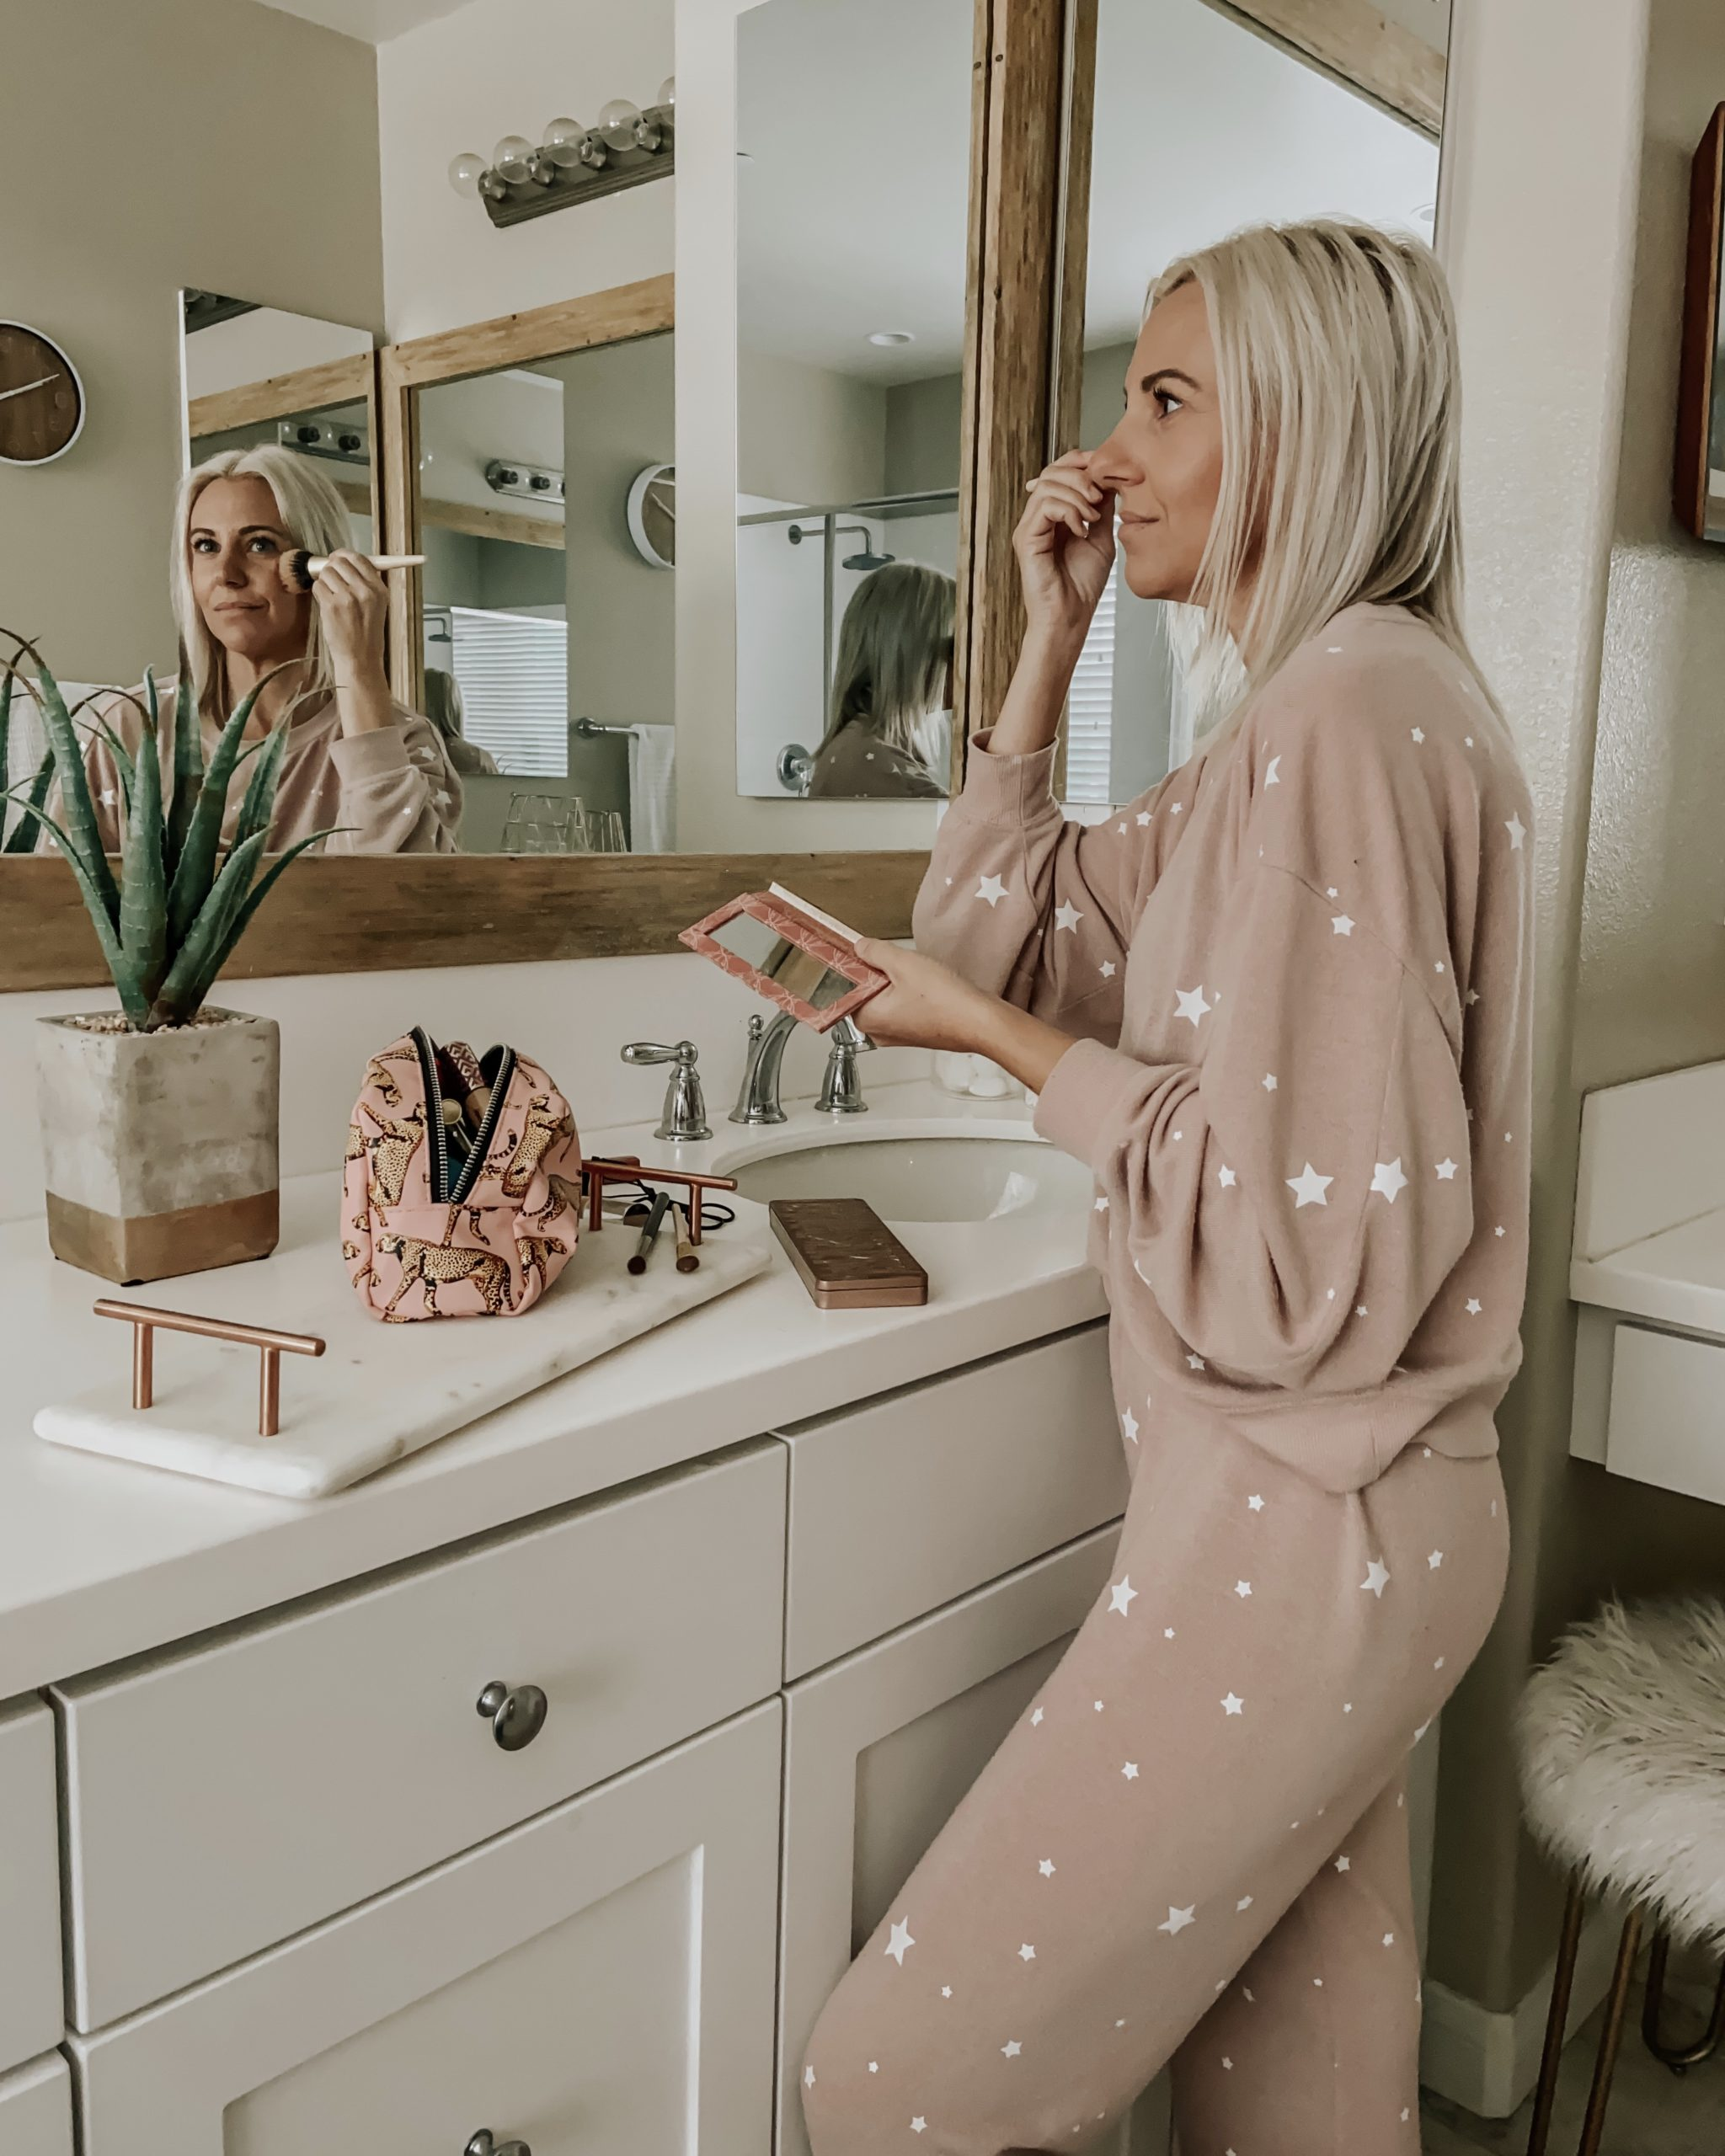 5 MINUTE EVERYDAY MAKEUP- Jaclyn De Leon Style + I'm sharing my everyday 5 minute makeup routine + easy beauty tips for the busy mom on the go